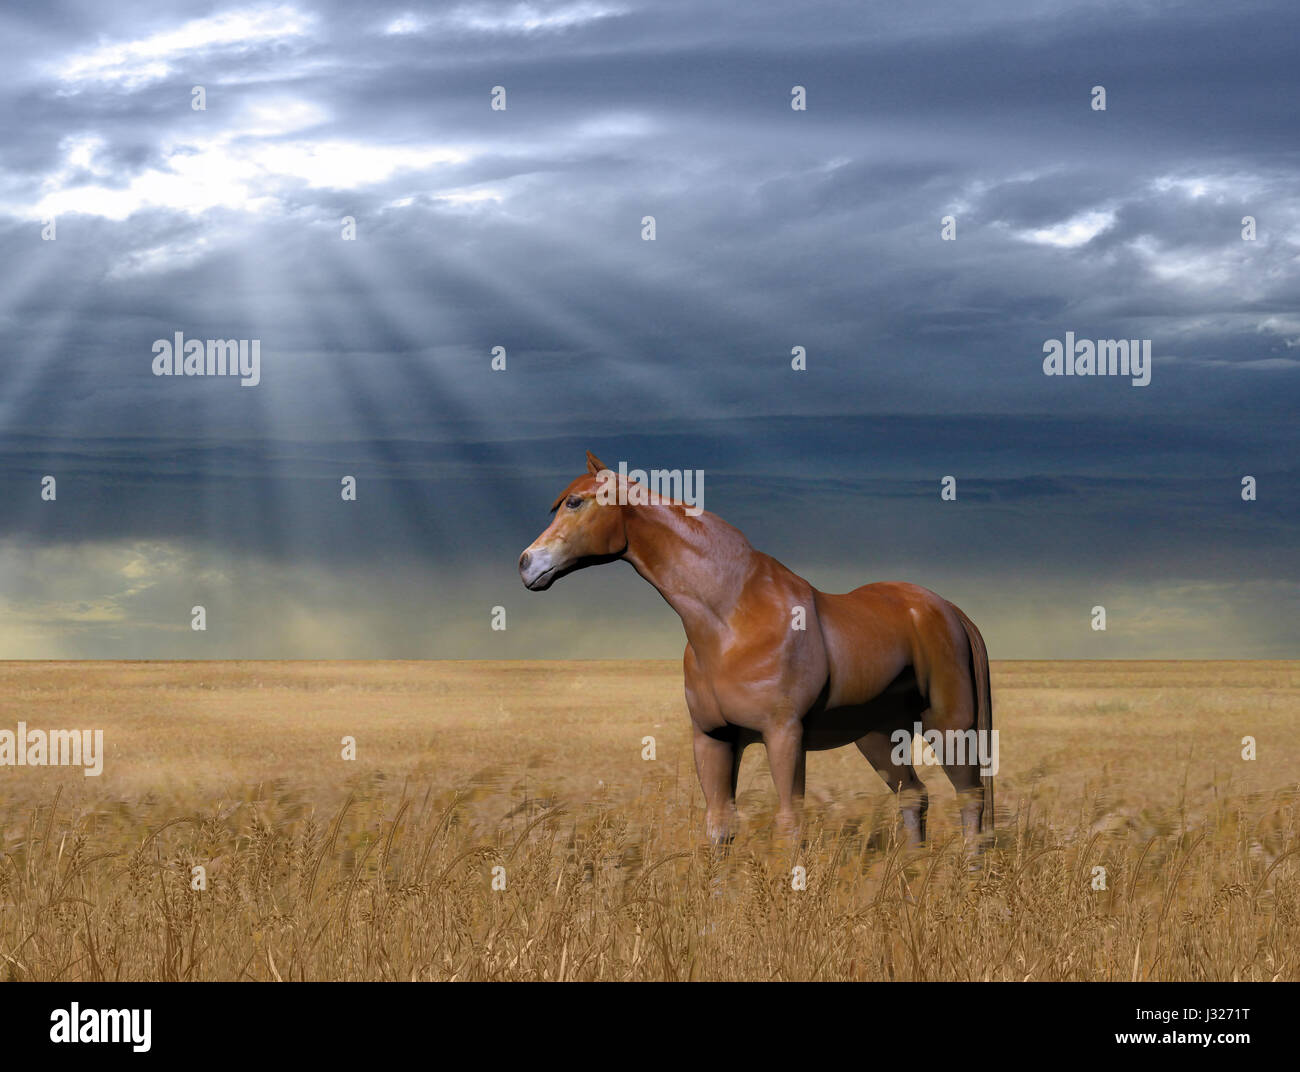 3D painting of a beautiful horse standing in a golden wheat field against a cloudy, rainy sky. - Stock Image